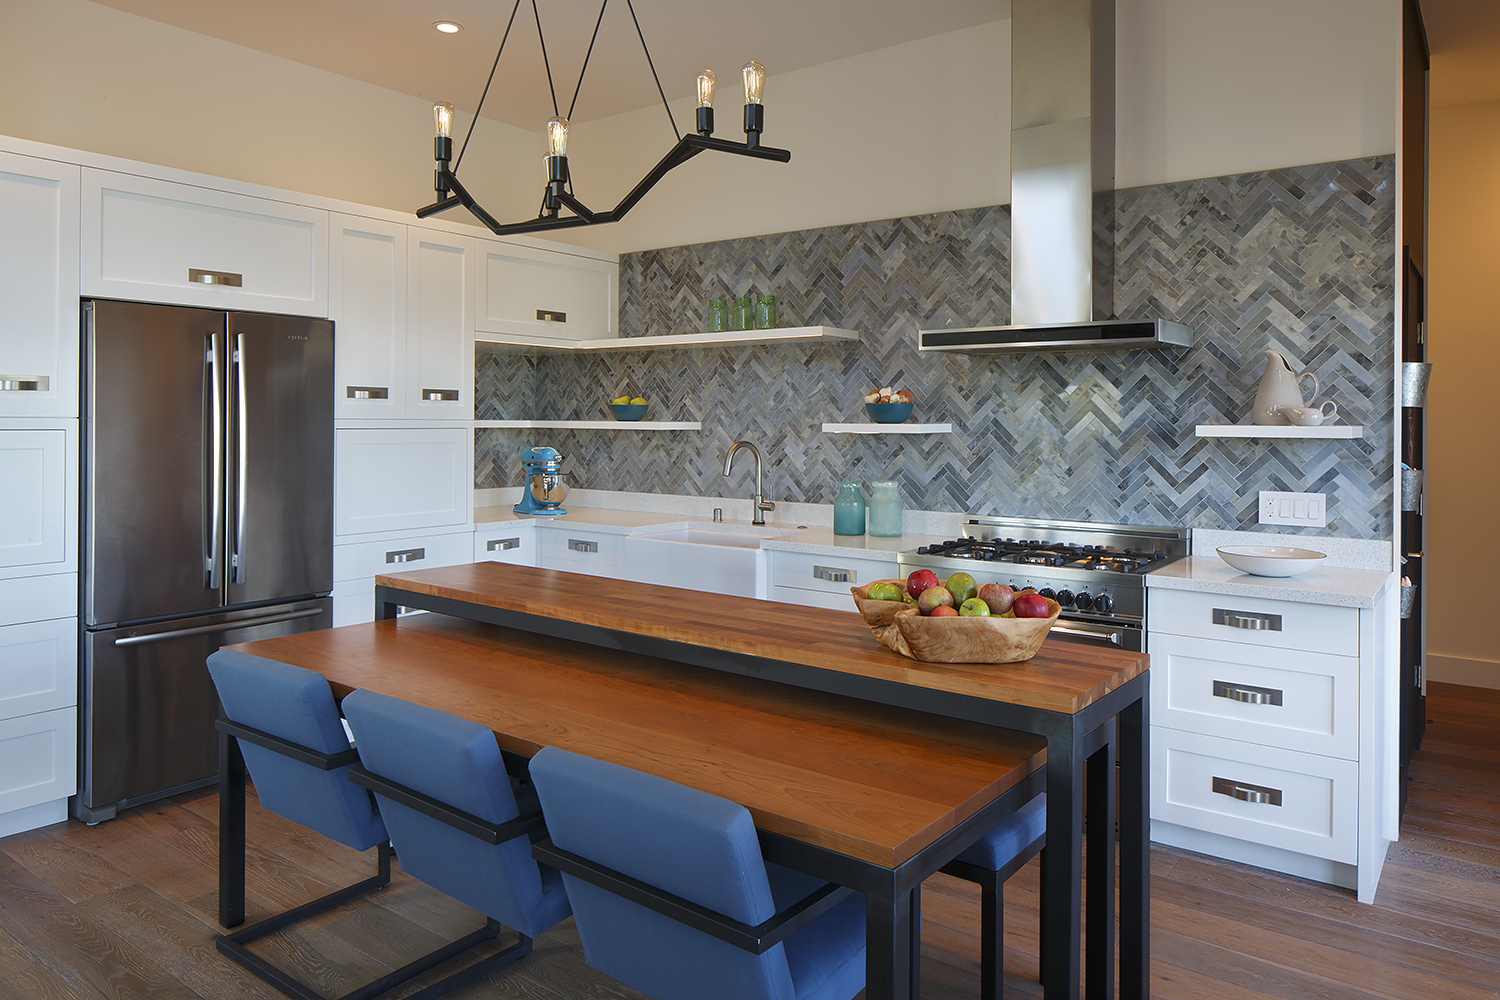 Overall kitchen